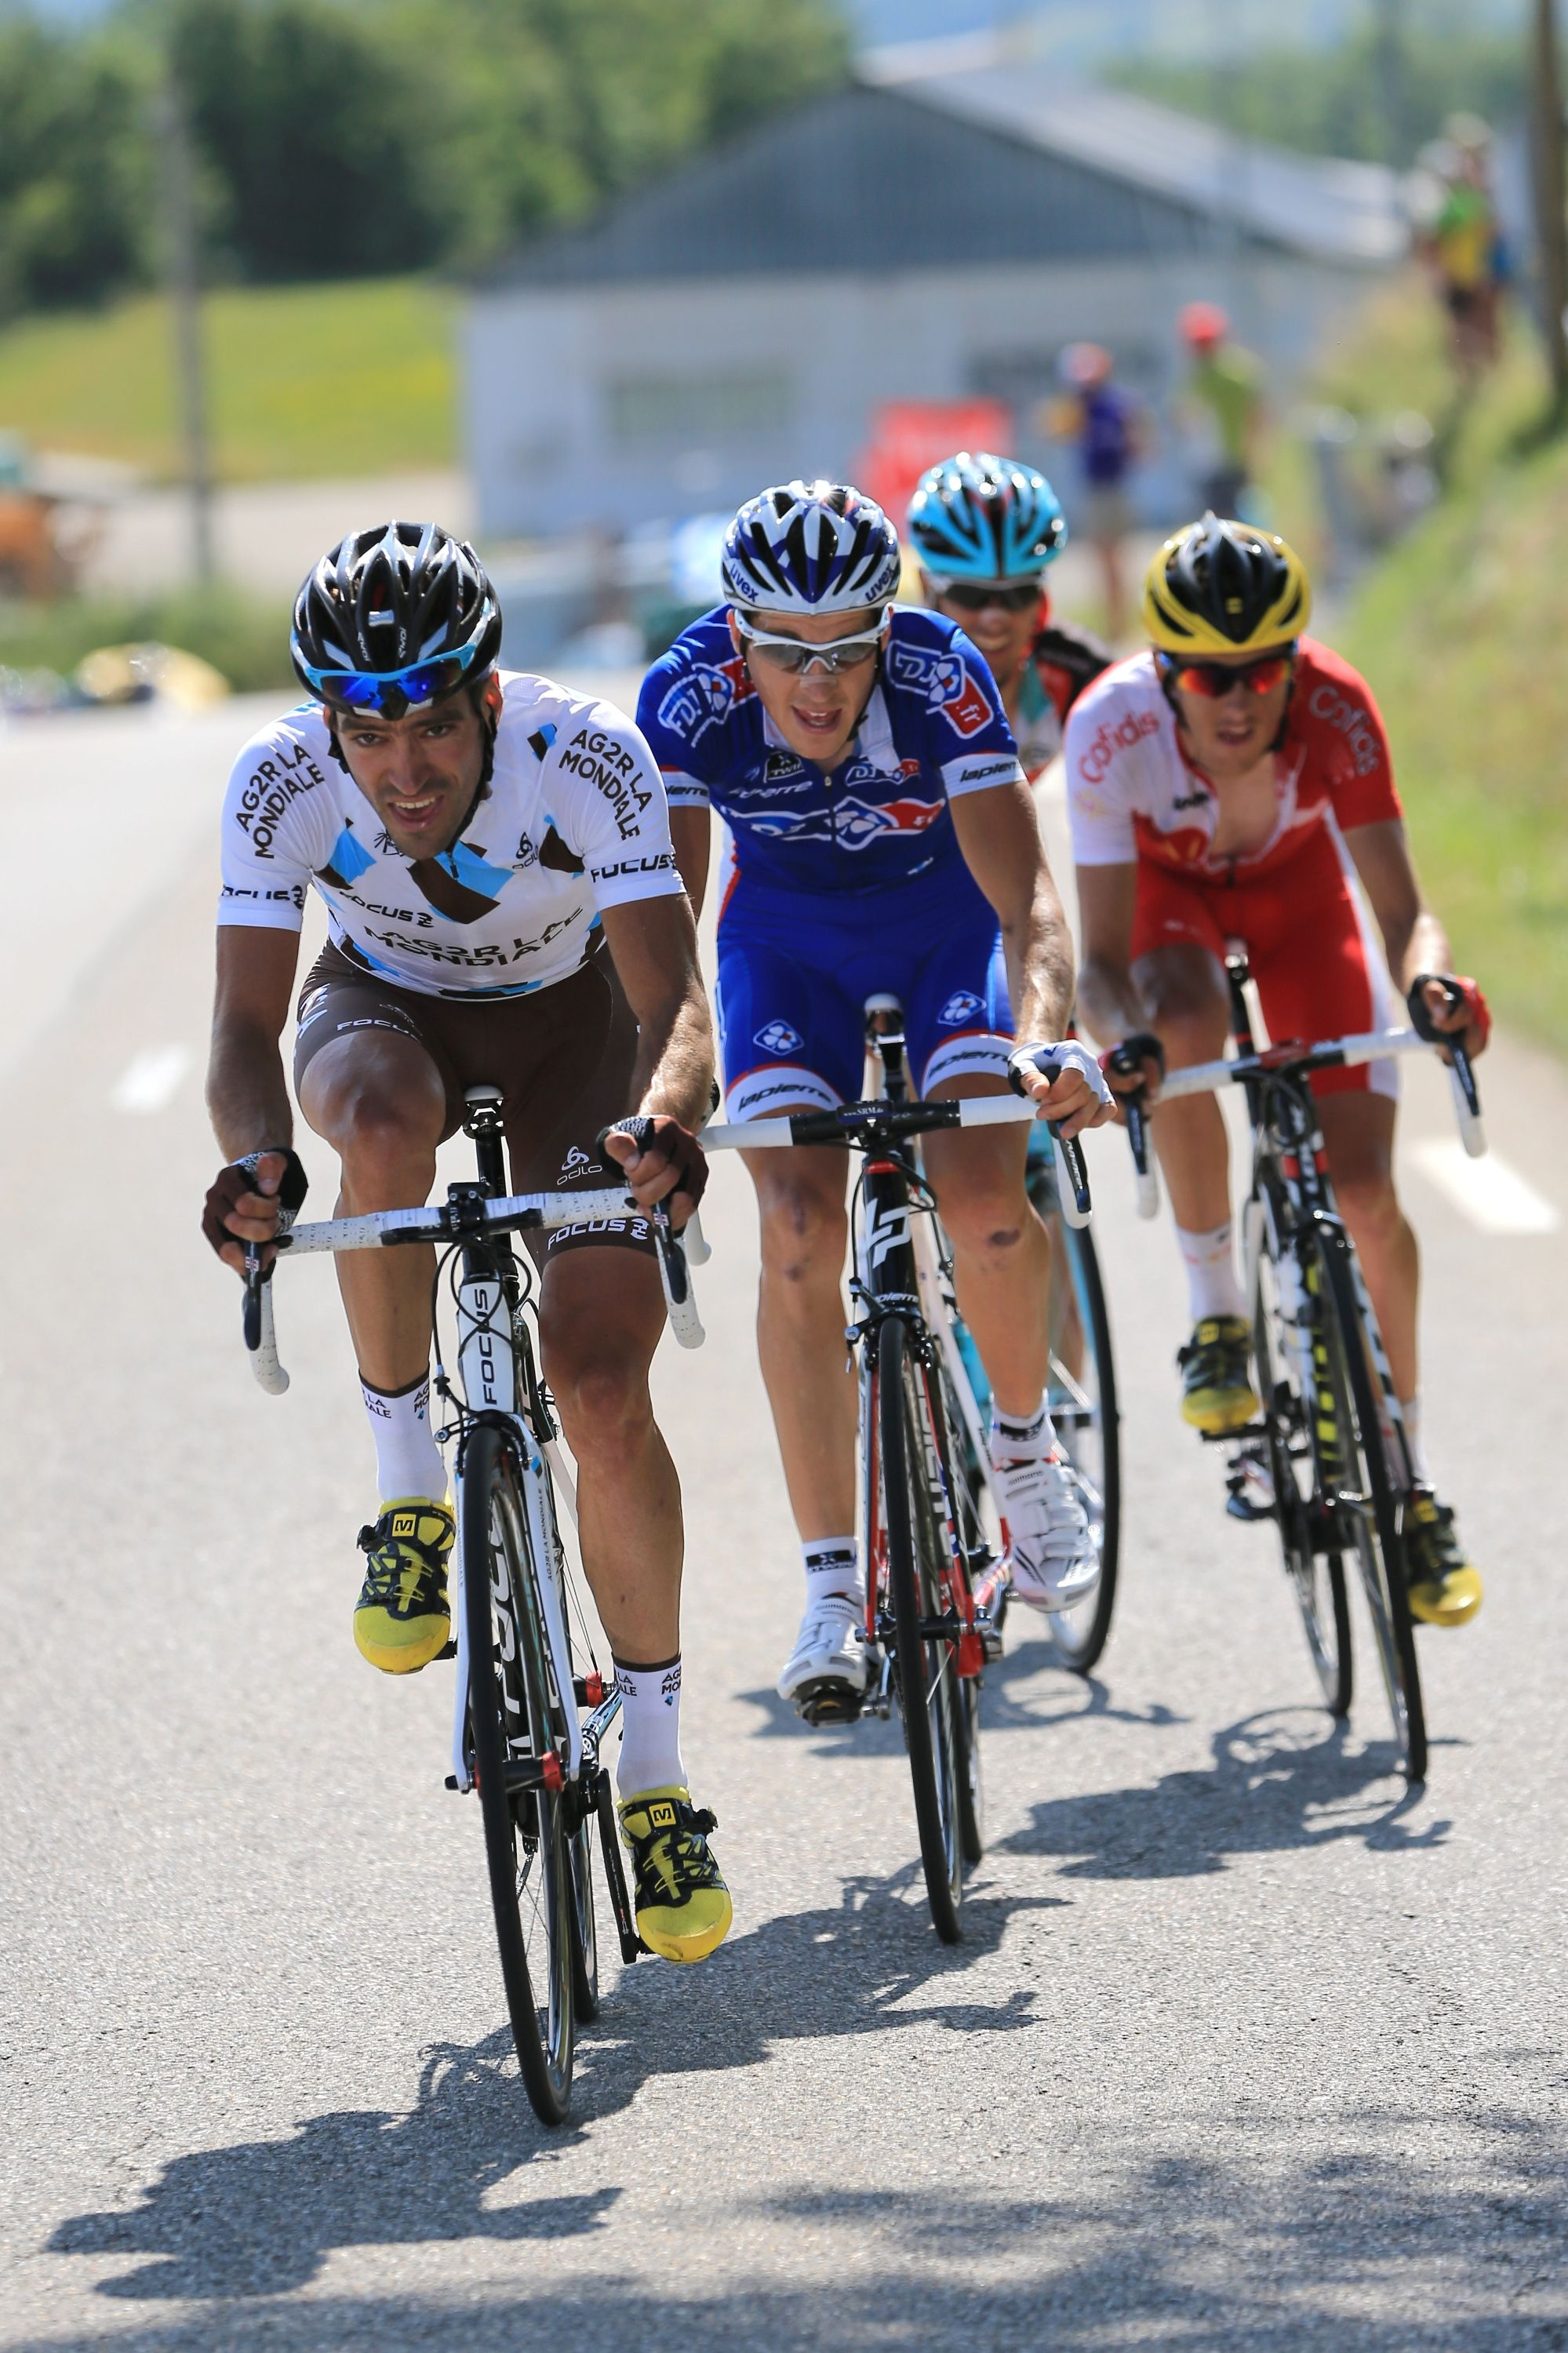 GAP, FRANCE - JULY 16: Arnold Jeannesson of France and Team FDJ.fr (2L) Andreas Kloden (back) of Germany and Team Radioshack Leopard, Jerome Coppel (R) of France and Team Cofidis Solutions Credits and Christophe Riblon (L) of France and Team AG2R La Mondiale in action during stage sixteen of the 2013 Tour de France, a 168KM road stage from Vaison-la-Romaine to Gap, on July 16, 2013 in Gap, France. (Photo by Doug Pensinger/Getty Images)